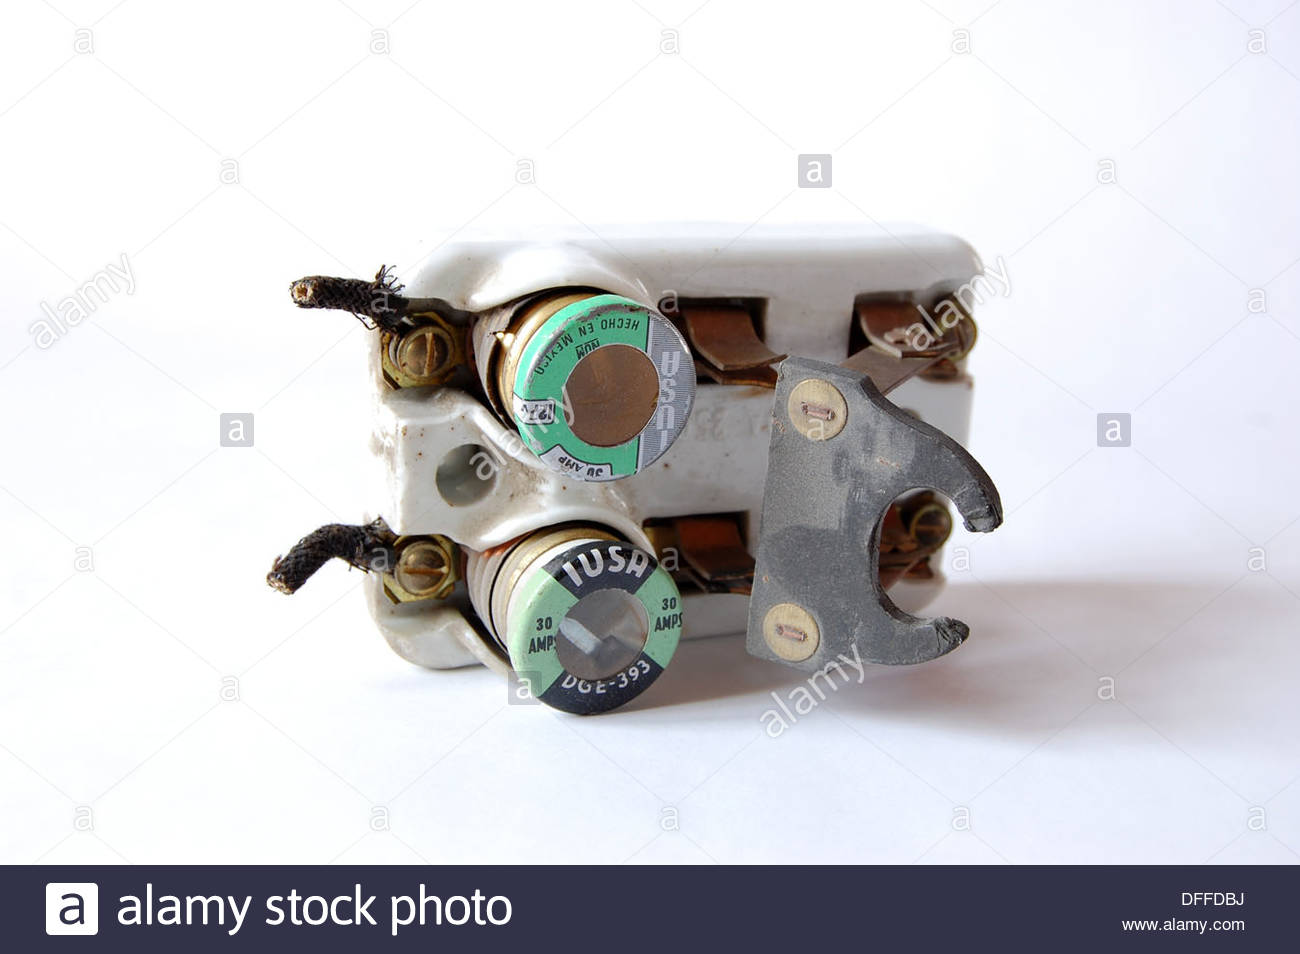 Fuse Box Breaker Old Fuses Stock Photos Images 1950s Vintage Ceramic Electrical Circuit With And Knife Switch Plain Background Natural